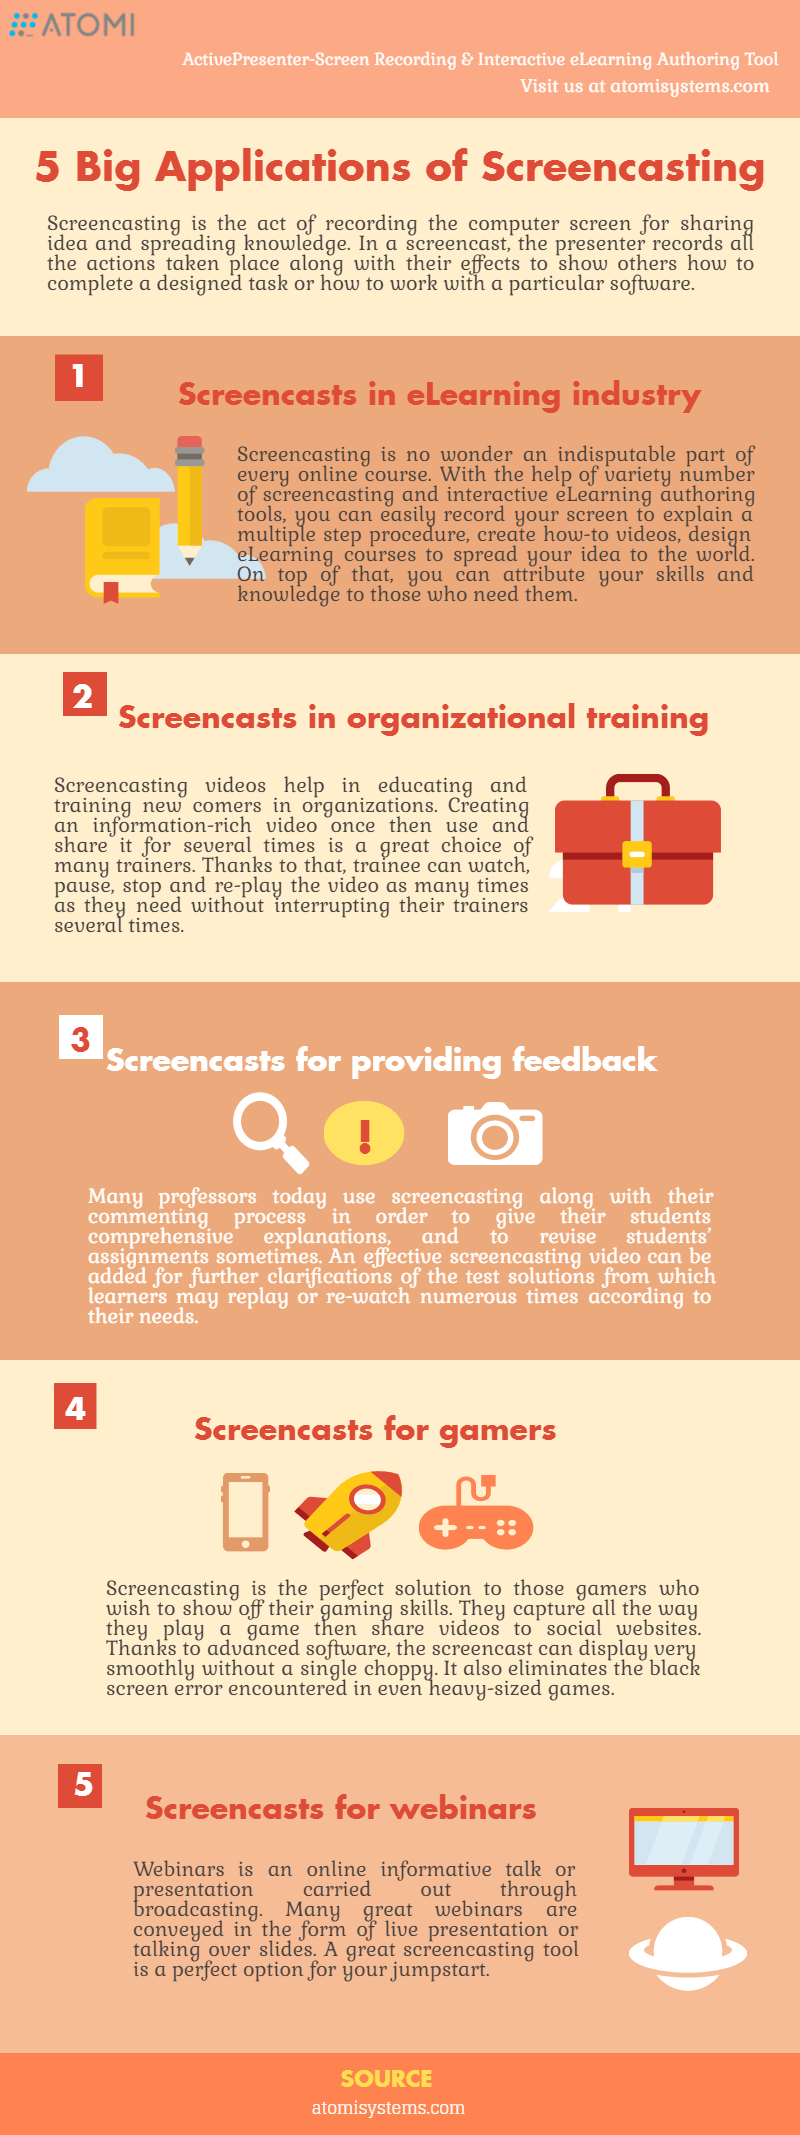 Different Ways to Use Screencasting for Your Online Courses